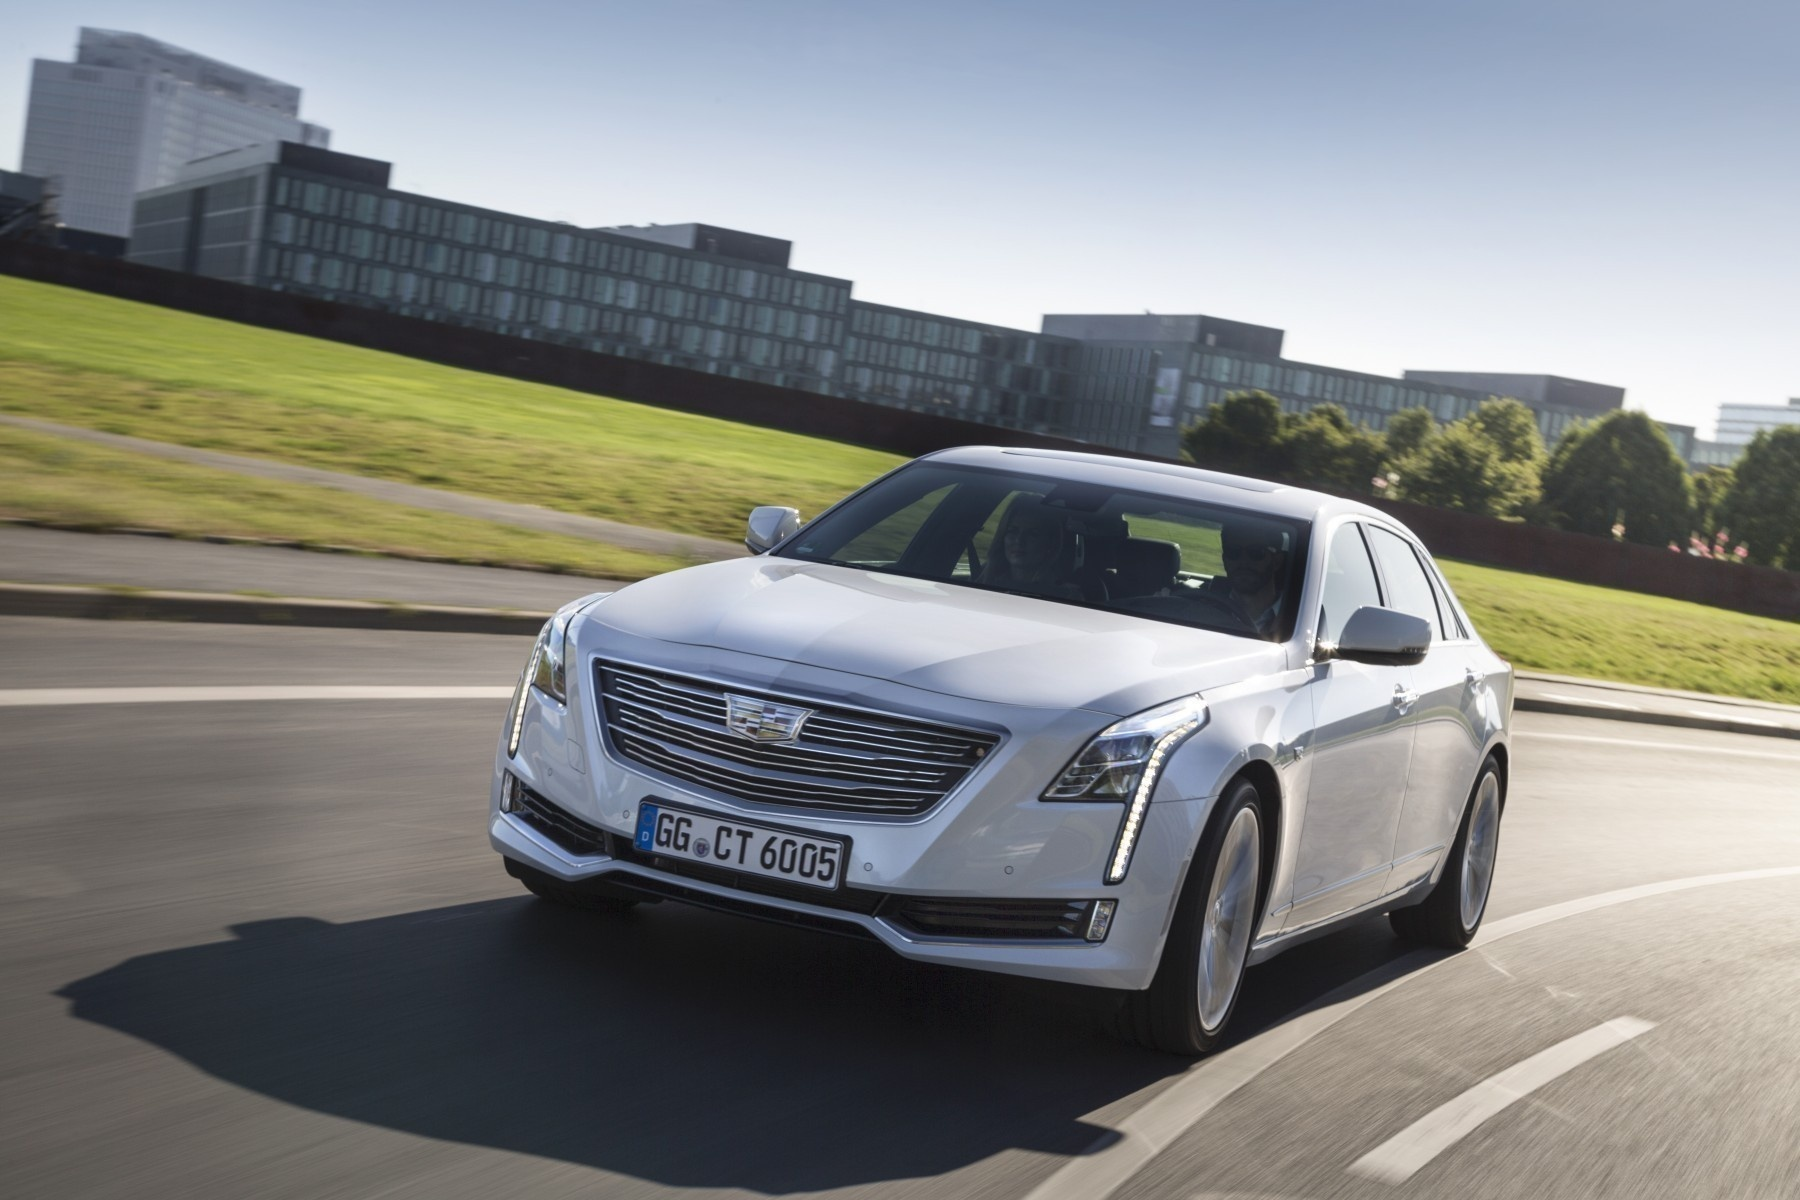 Cadillac CT6 Limousine Baujahr 2018 bei Auto Ludwig in 1230 Wien